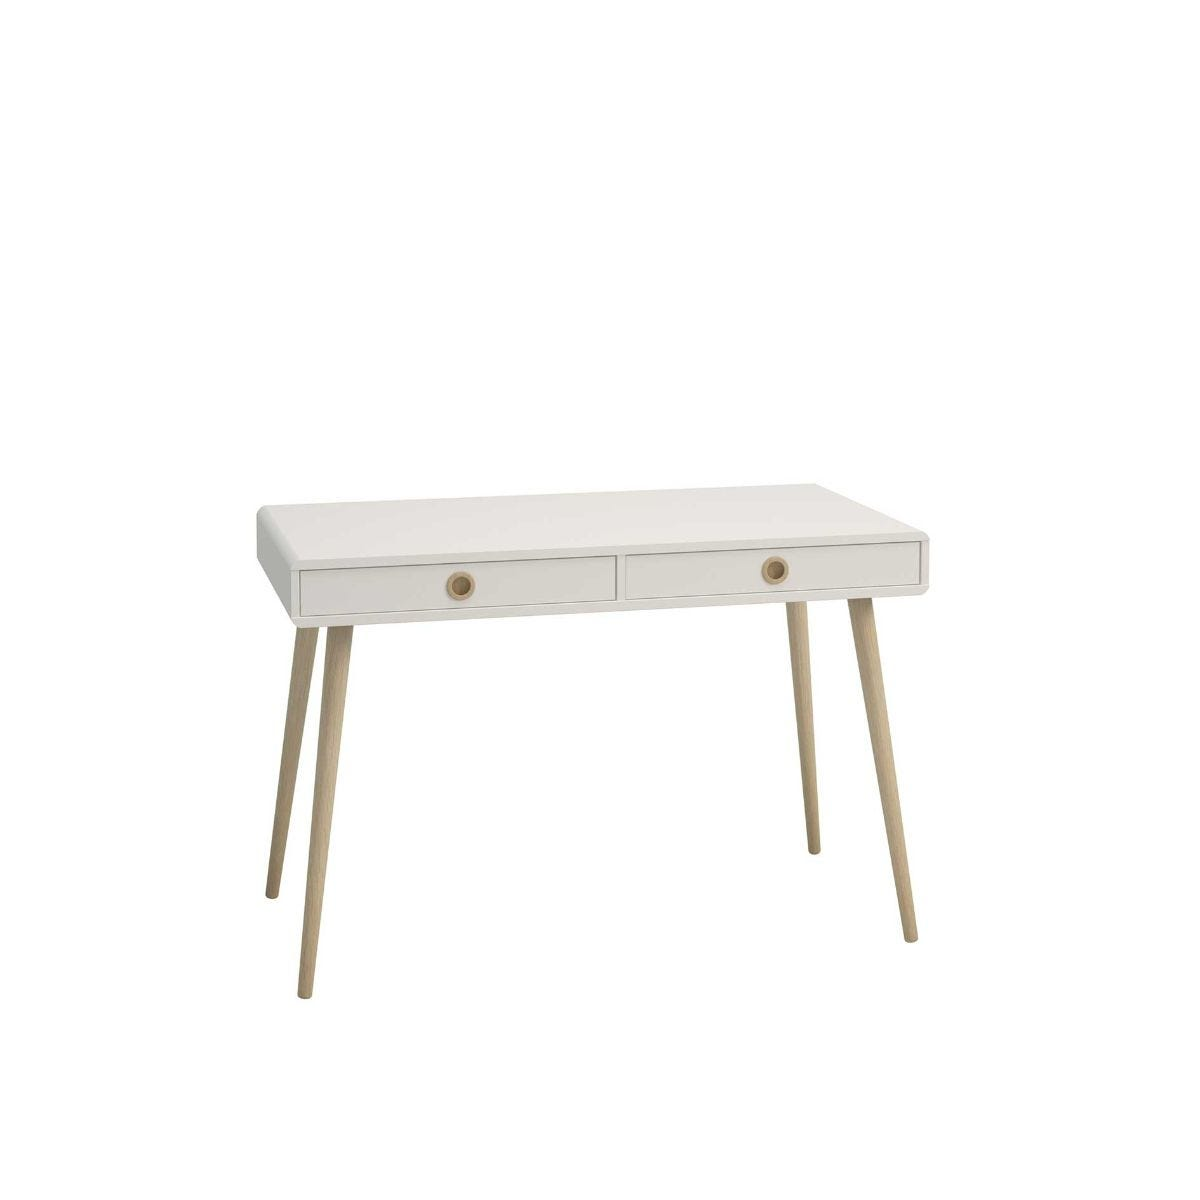 Steens Retro Home Office Desk, White